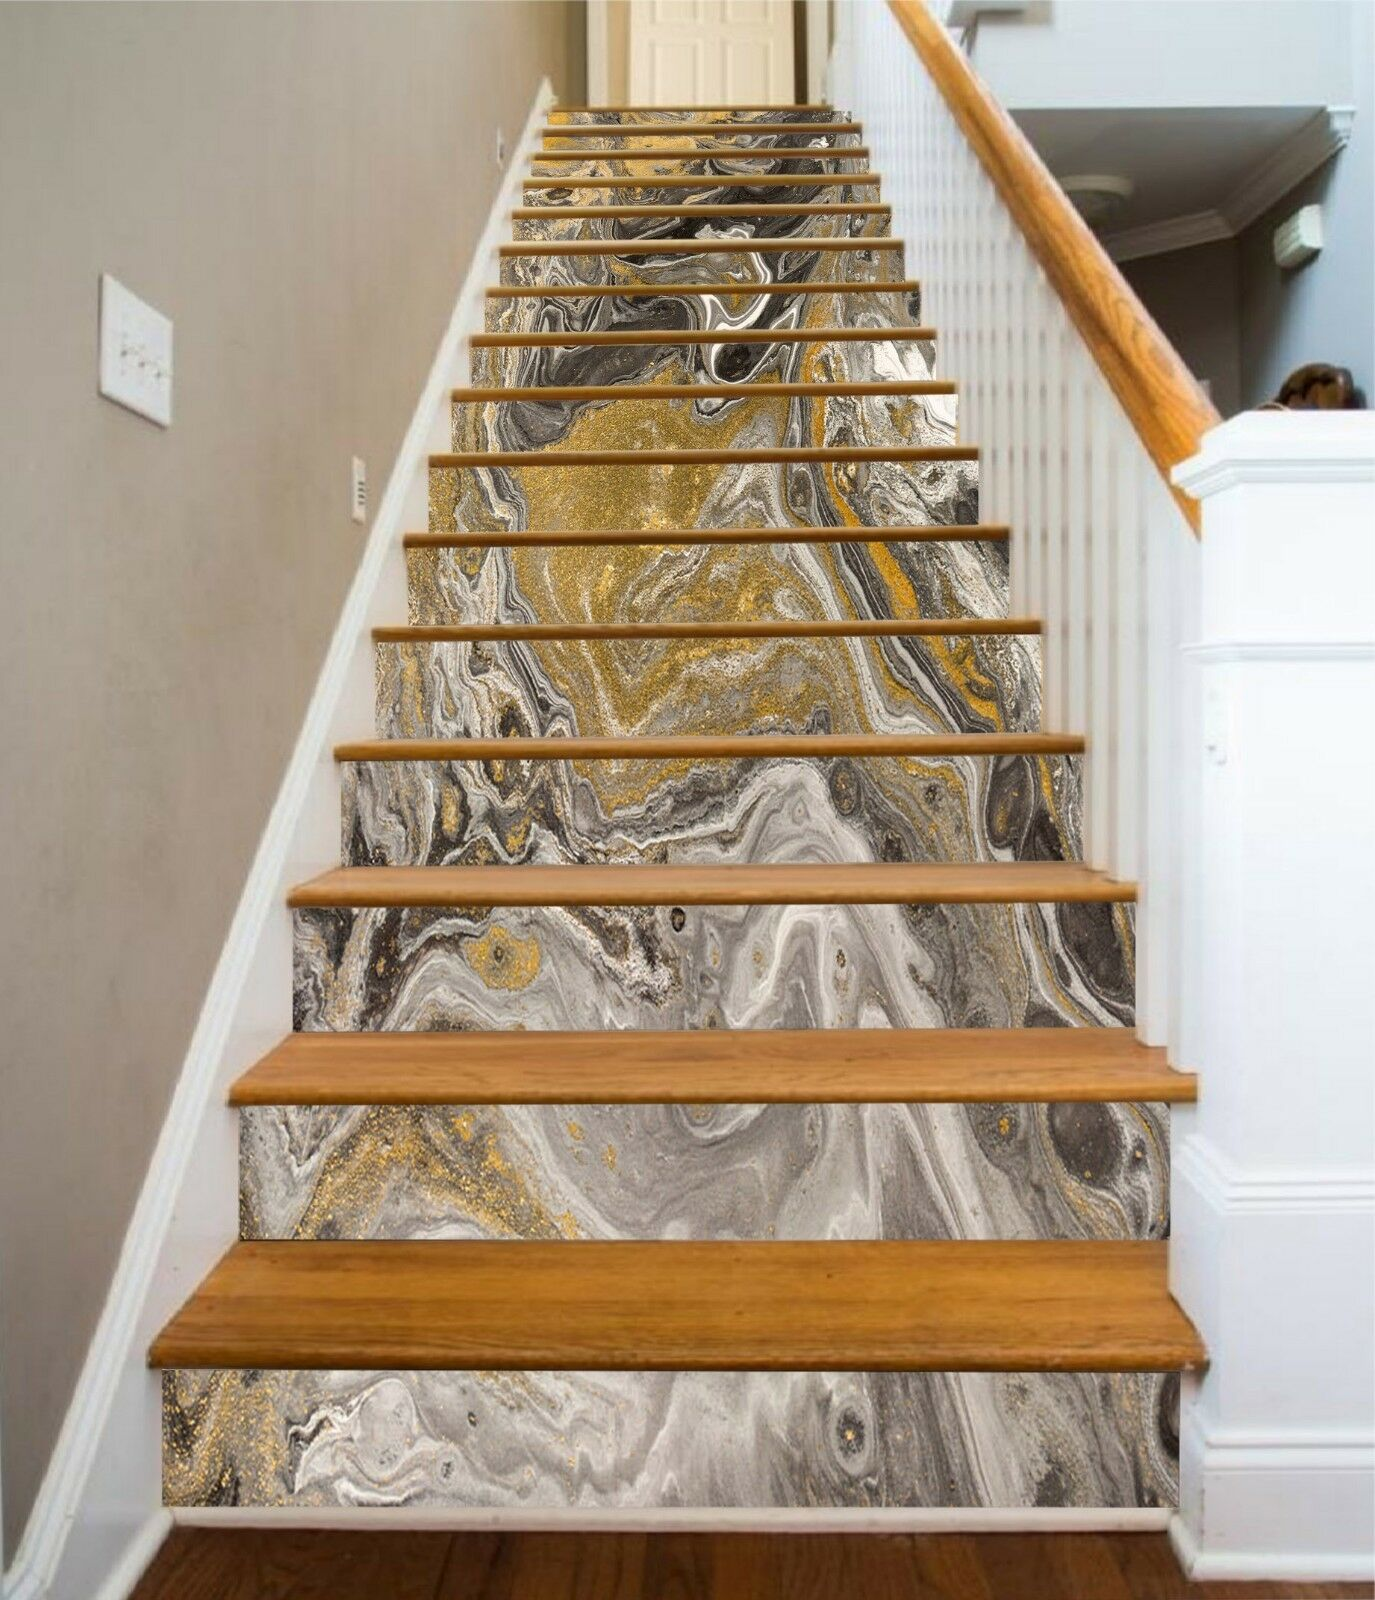 3D Abstract Shadin 72 Tile Marble Stair Risers Photo Mural Vinyl Decal Wallpaper